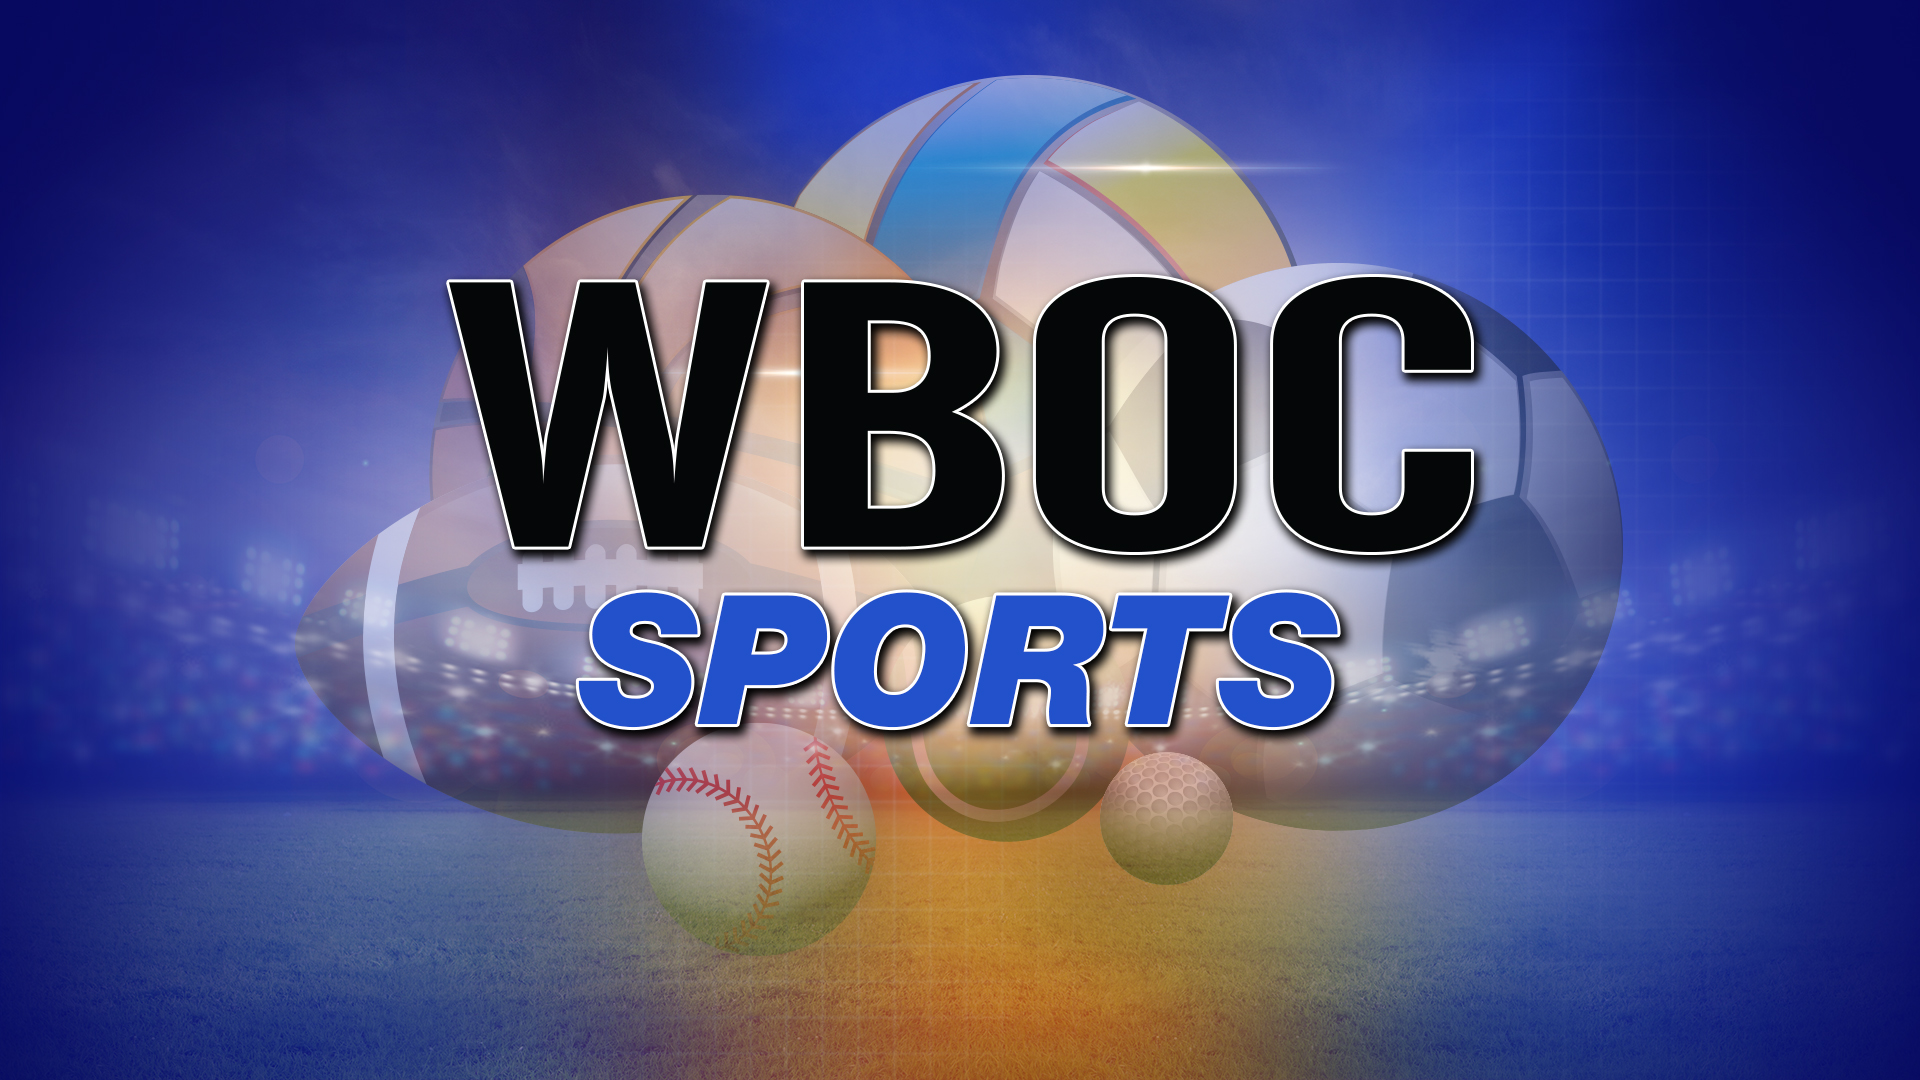 WBOC Sports Report: Monday, October 26, 2015